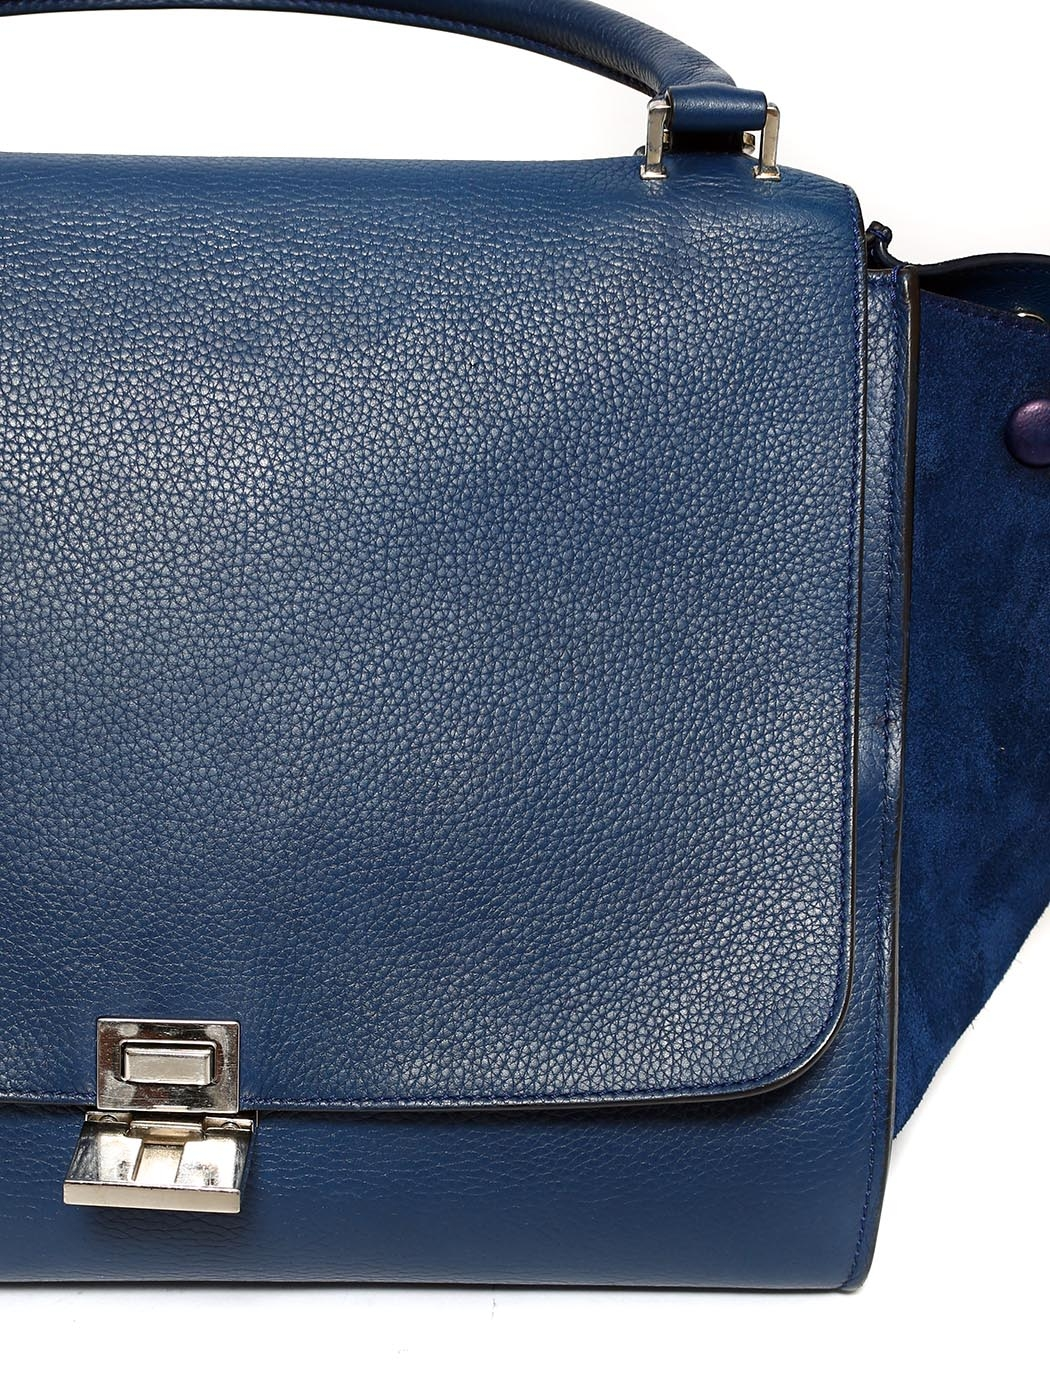 95cba8f7b0 ... Medium size blue grained and suede leather TRAPEZE handbag with strap  Retail price €2200 ...